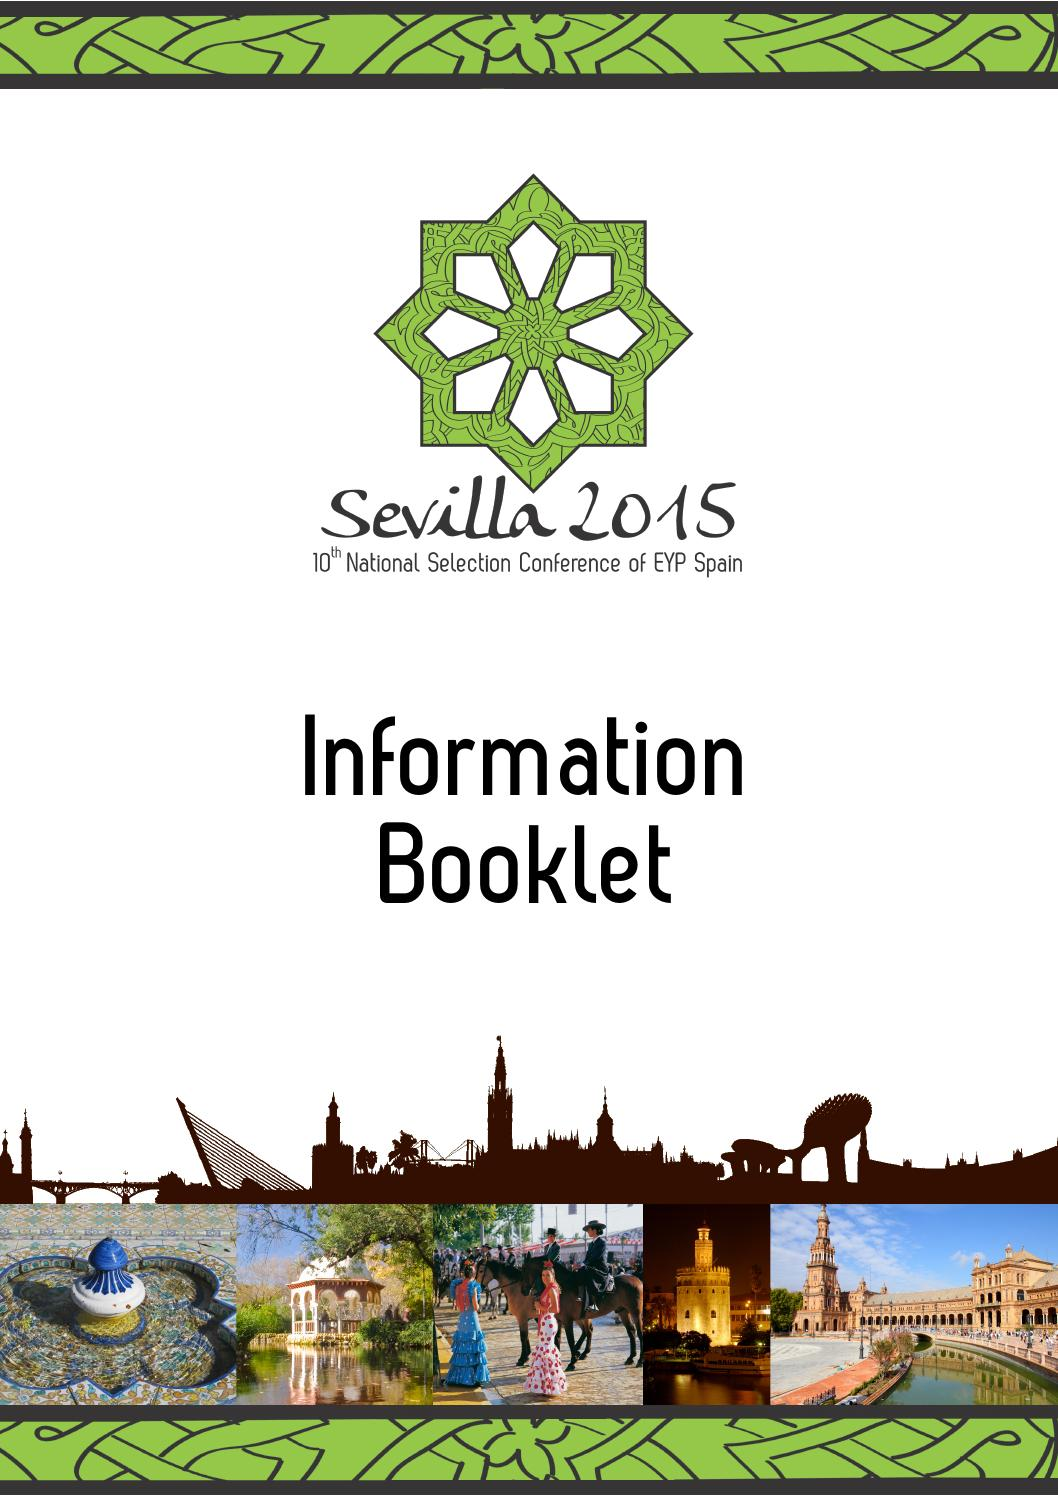 Information booklet sevilla 2015 by european youth parliament